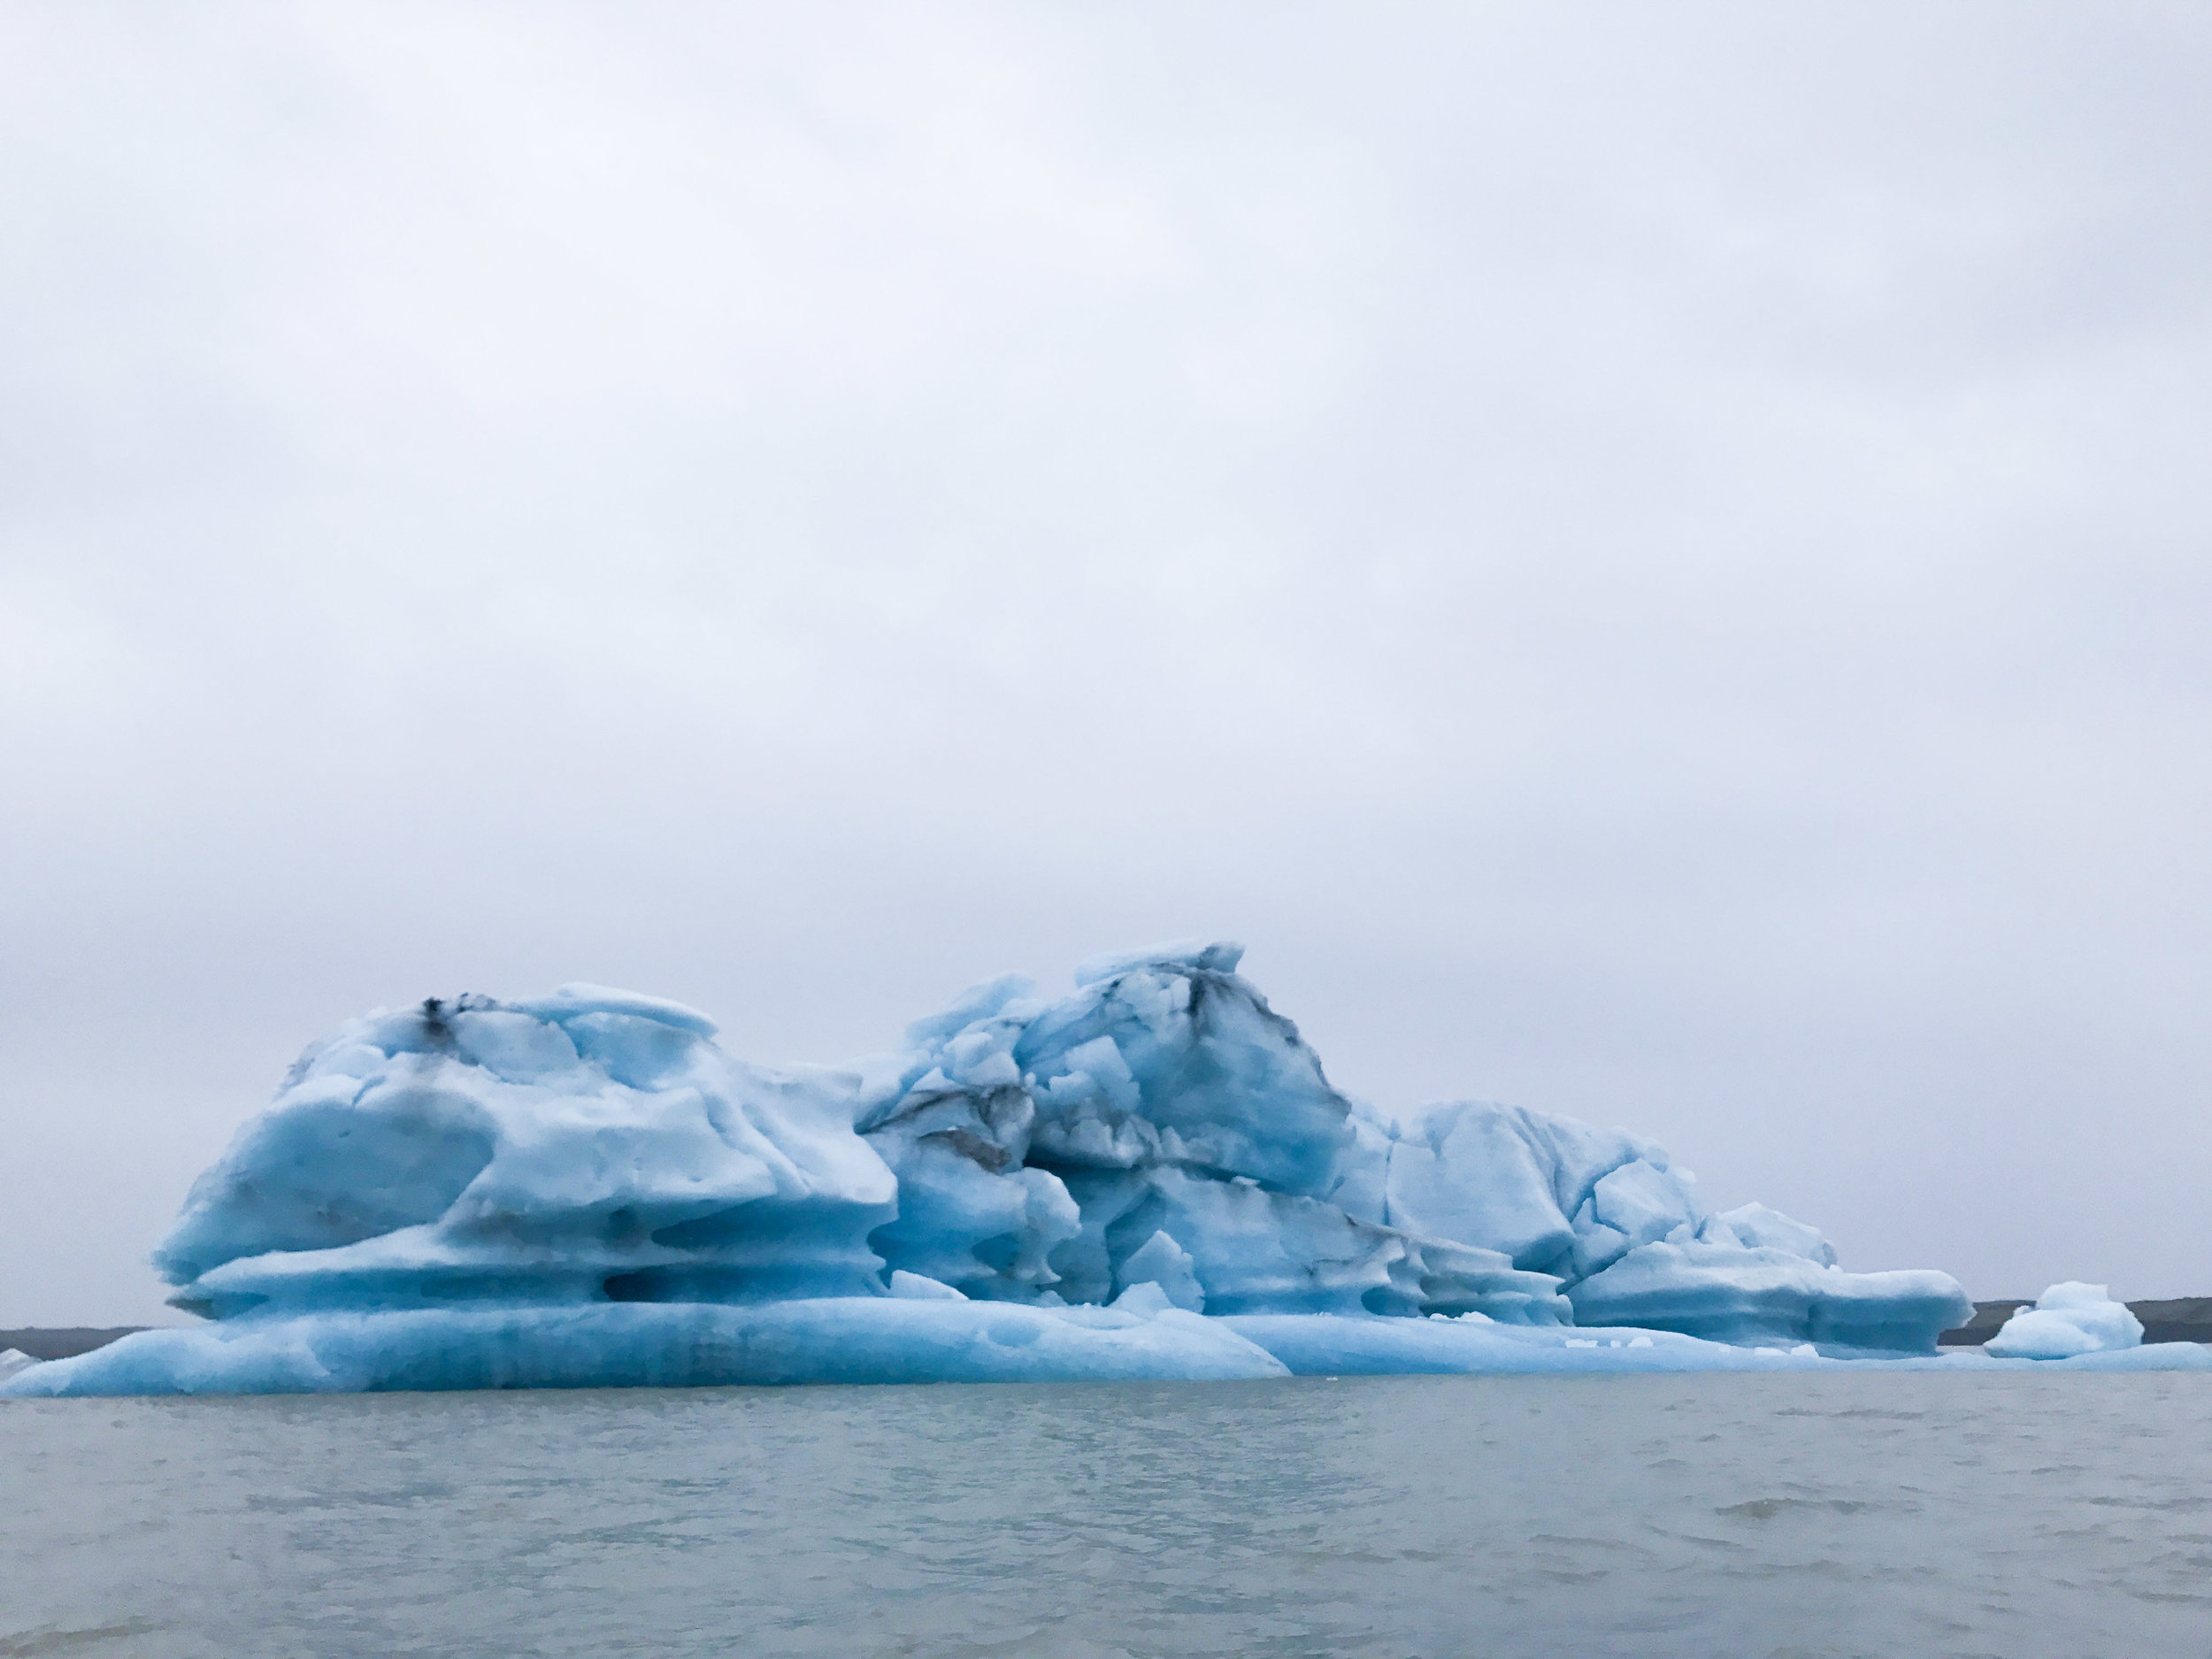 Jökulsarlon Ice Lagoon—where the White Walkers live.